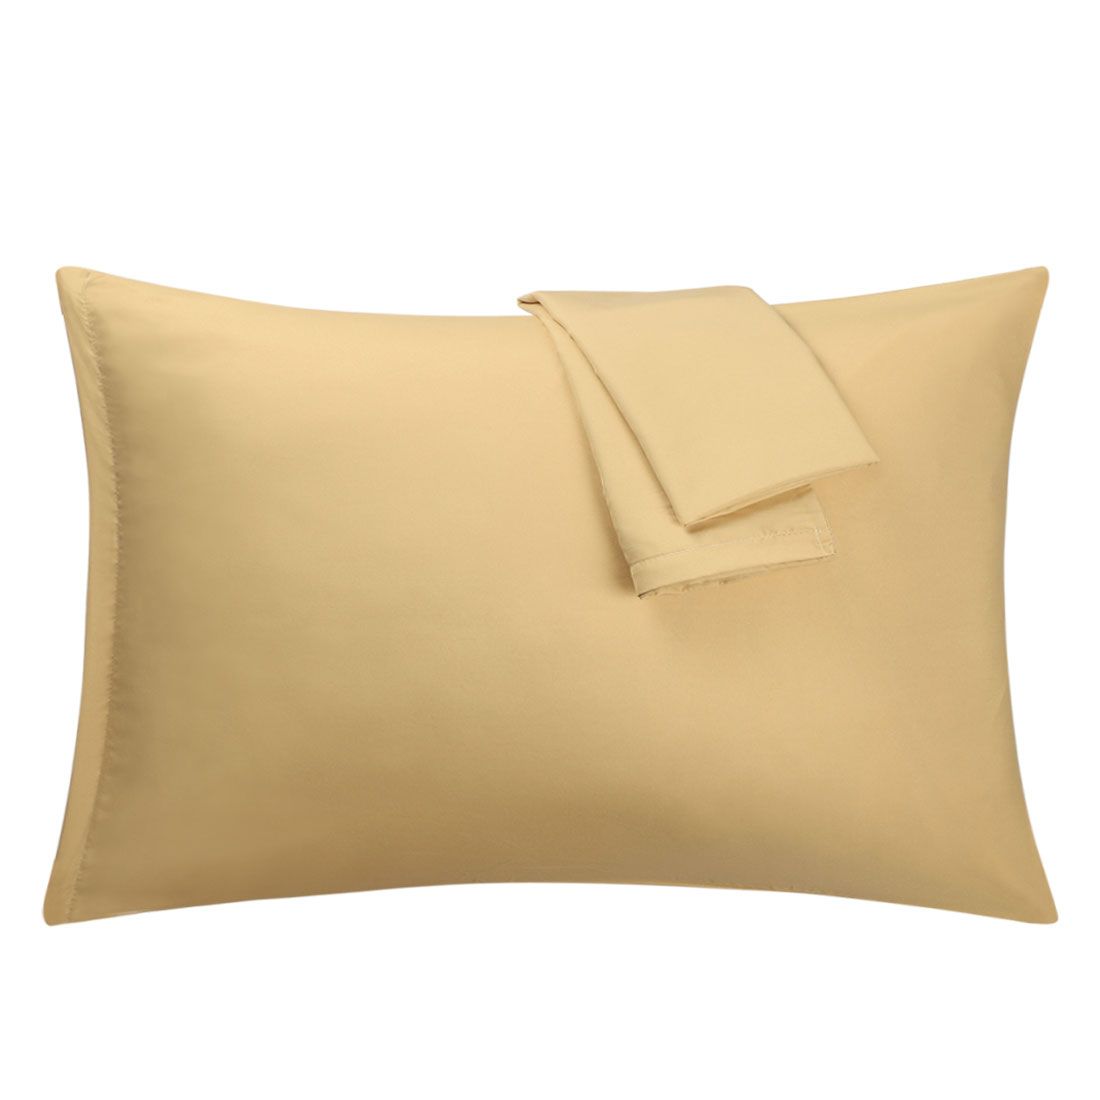 Gold Pillowcases Soft Microfiber Pillow Case Cover with Zipper Queen, 2 Pack